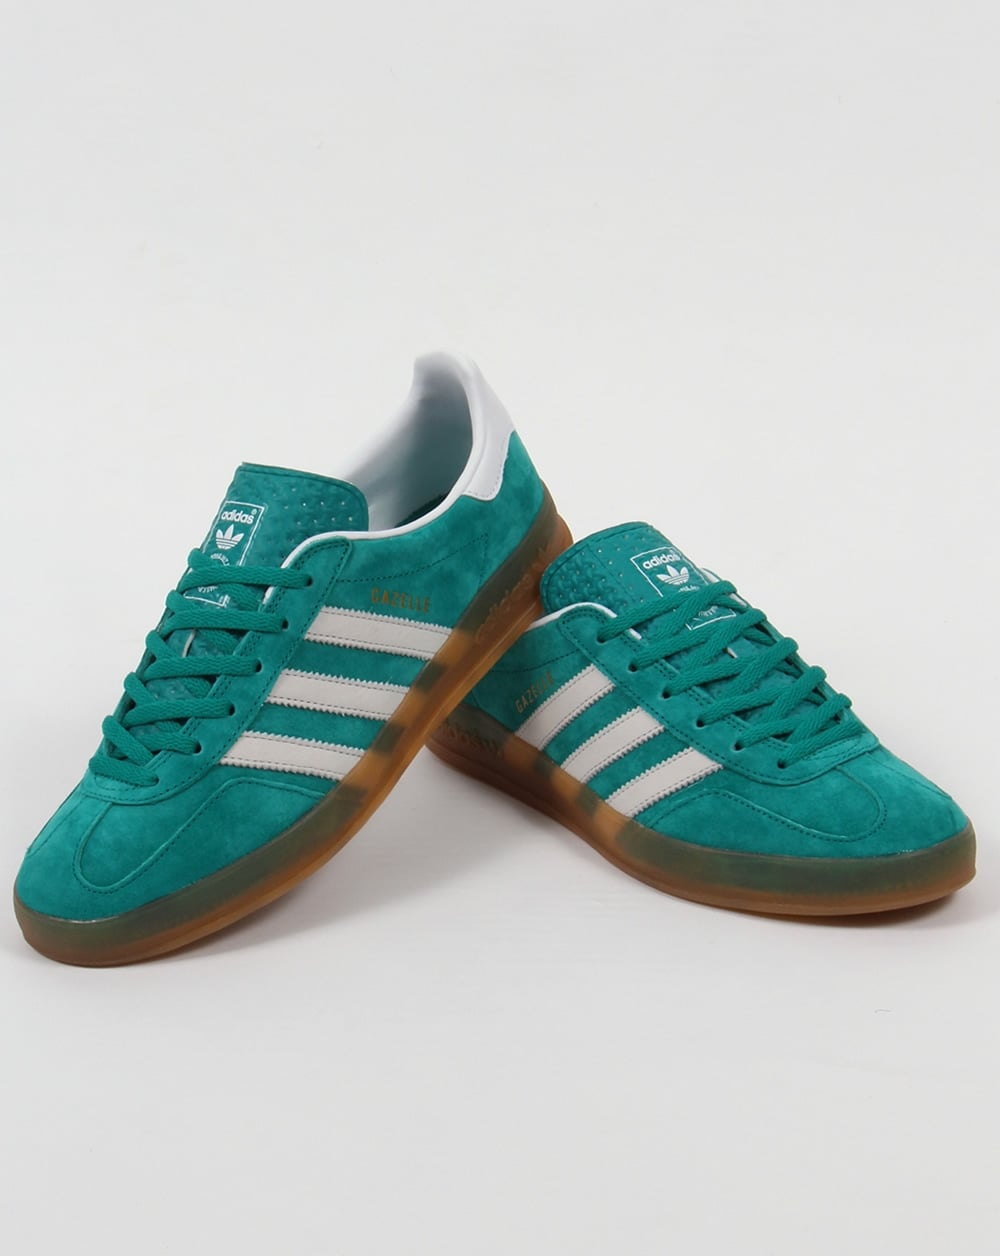 Adidas Gazelle Indoor Trainers Eqt Green White Originals